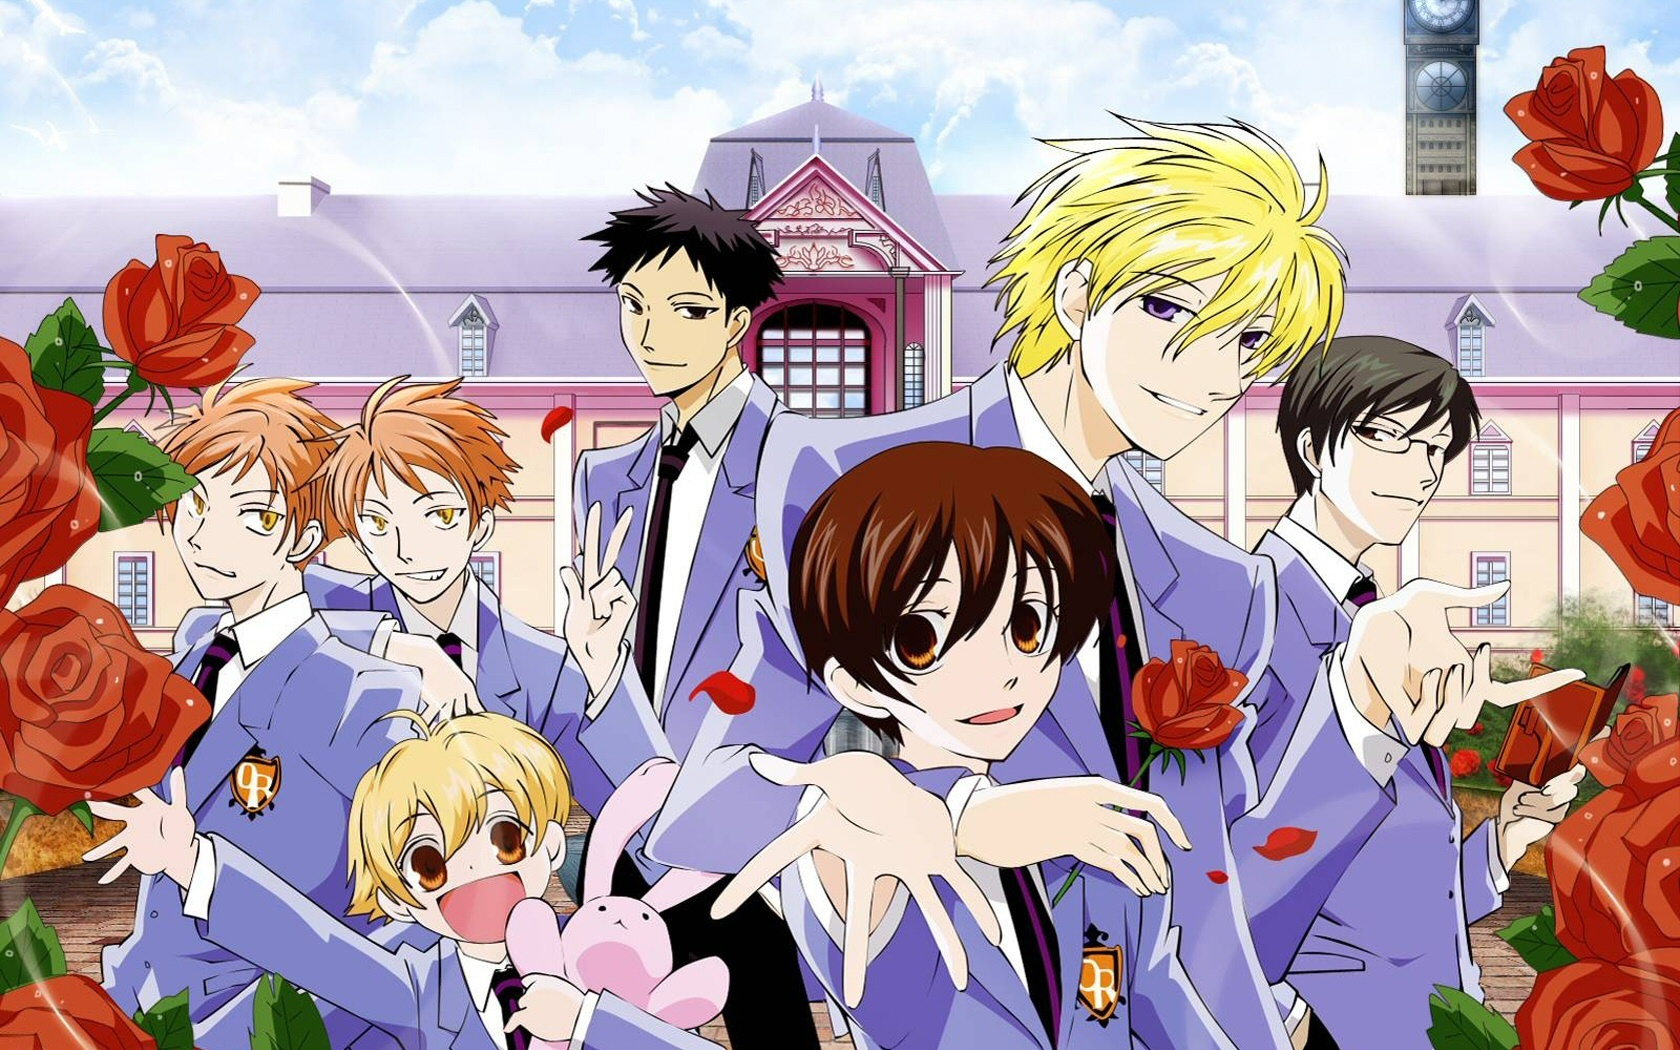 Ouran-High-School-Host-Club-OHSHC-fanpop-anime-19589438-1680-1050